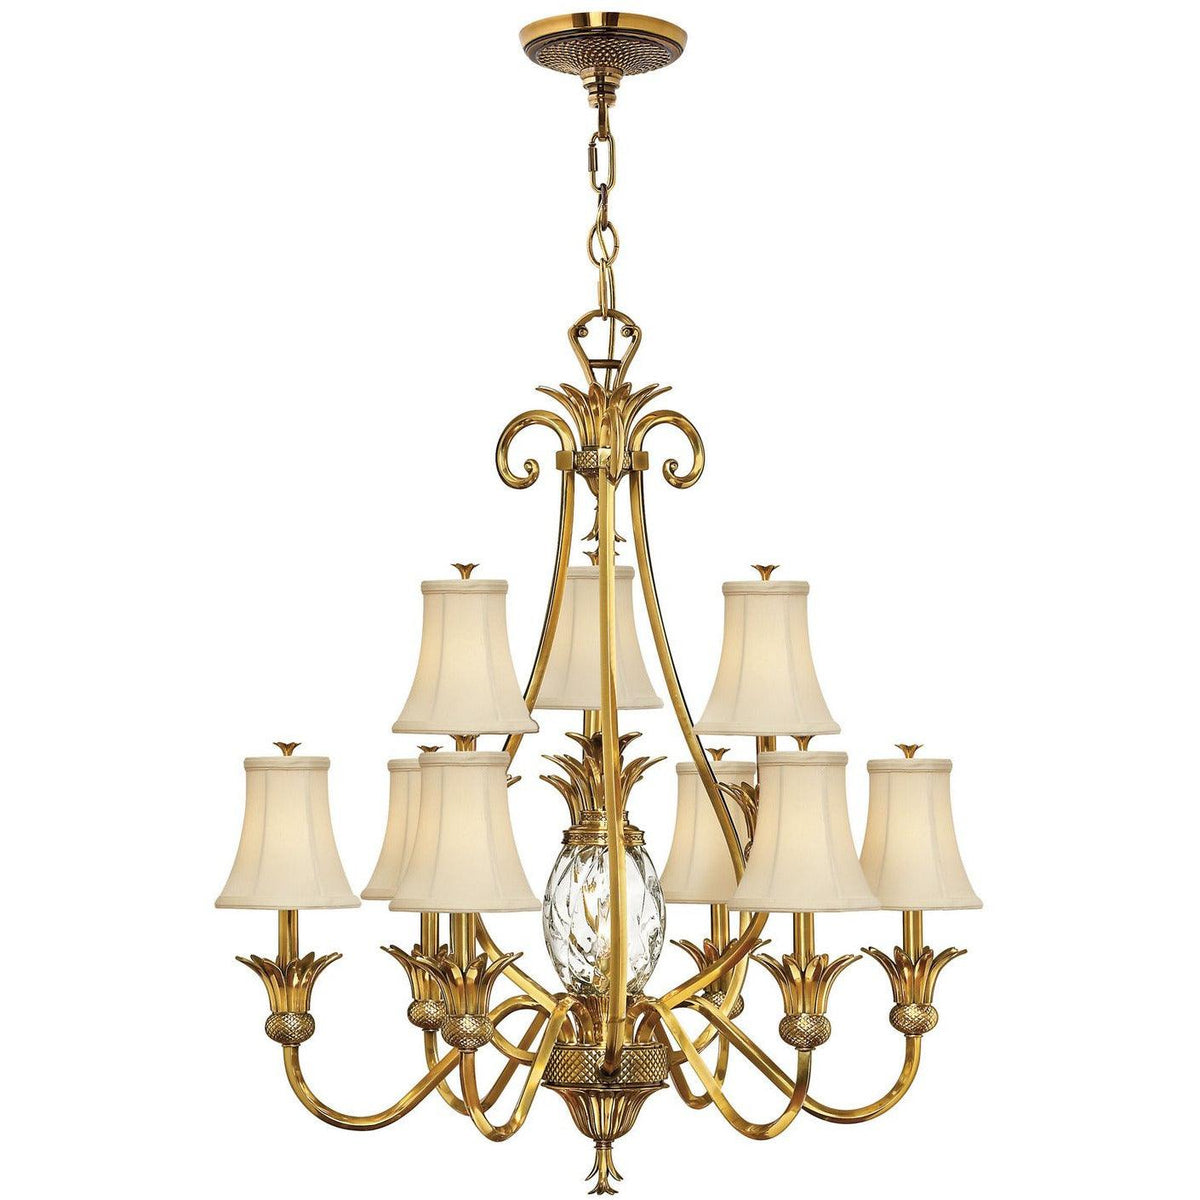 Hinkley Canada - 4887BB - Ten Light Foyer Chandelier - Plantation - Burnished Brass